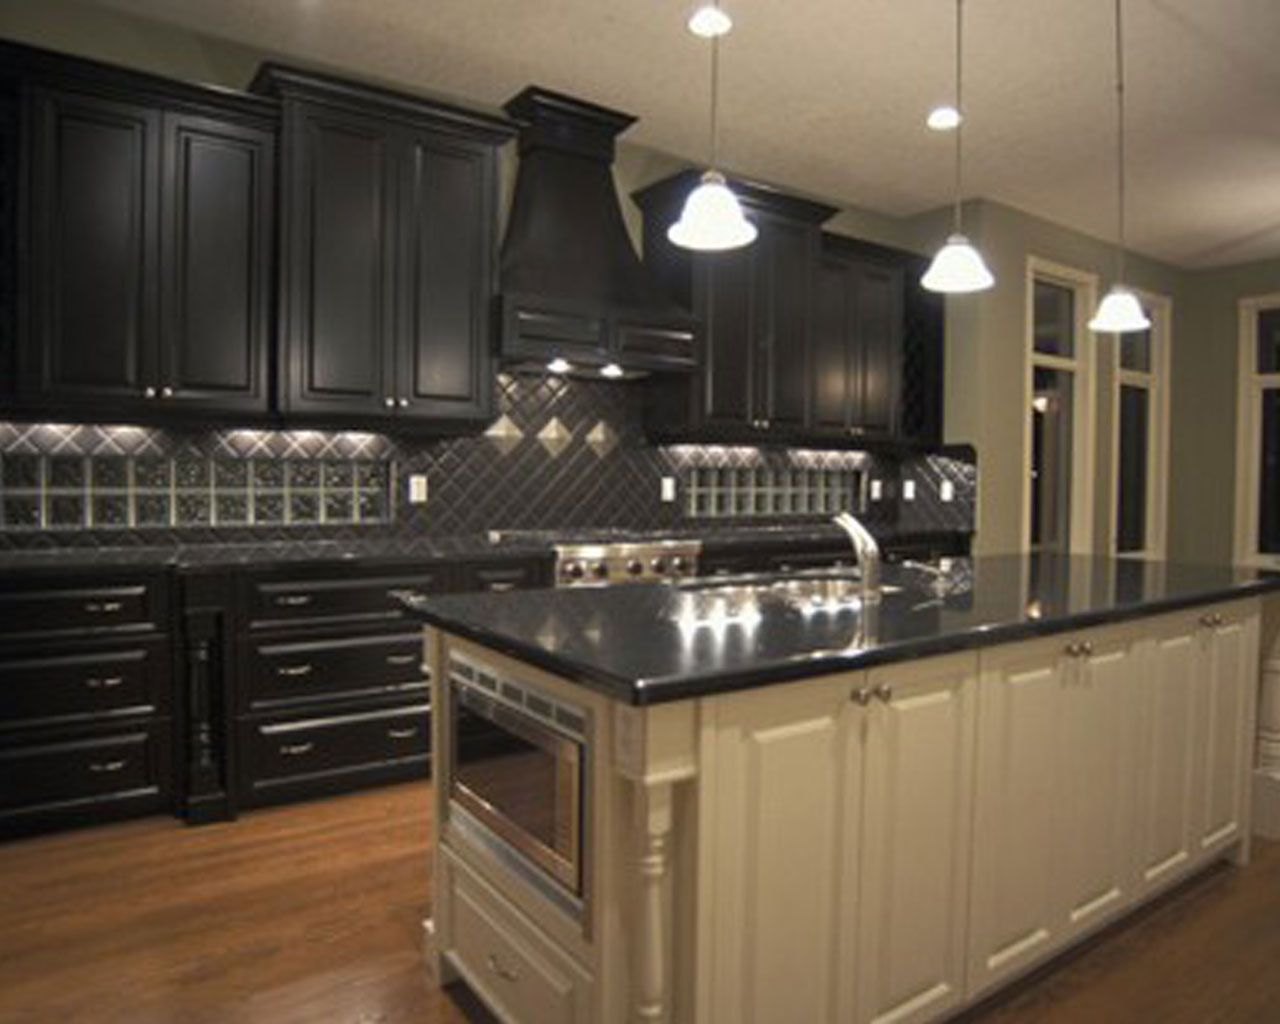 Finest design black kitchen cabinets wallpapers new for Kitchen cabinet design photos